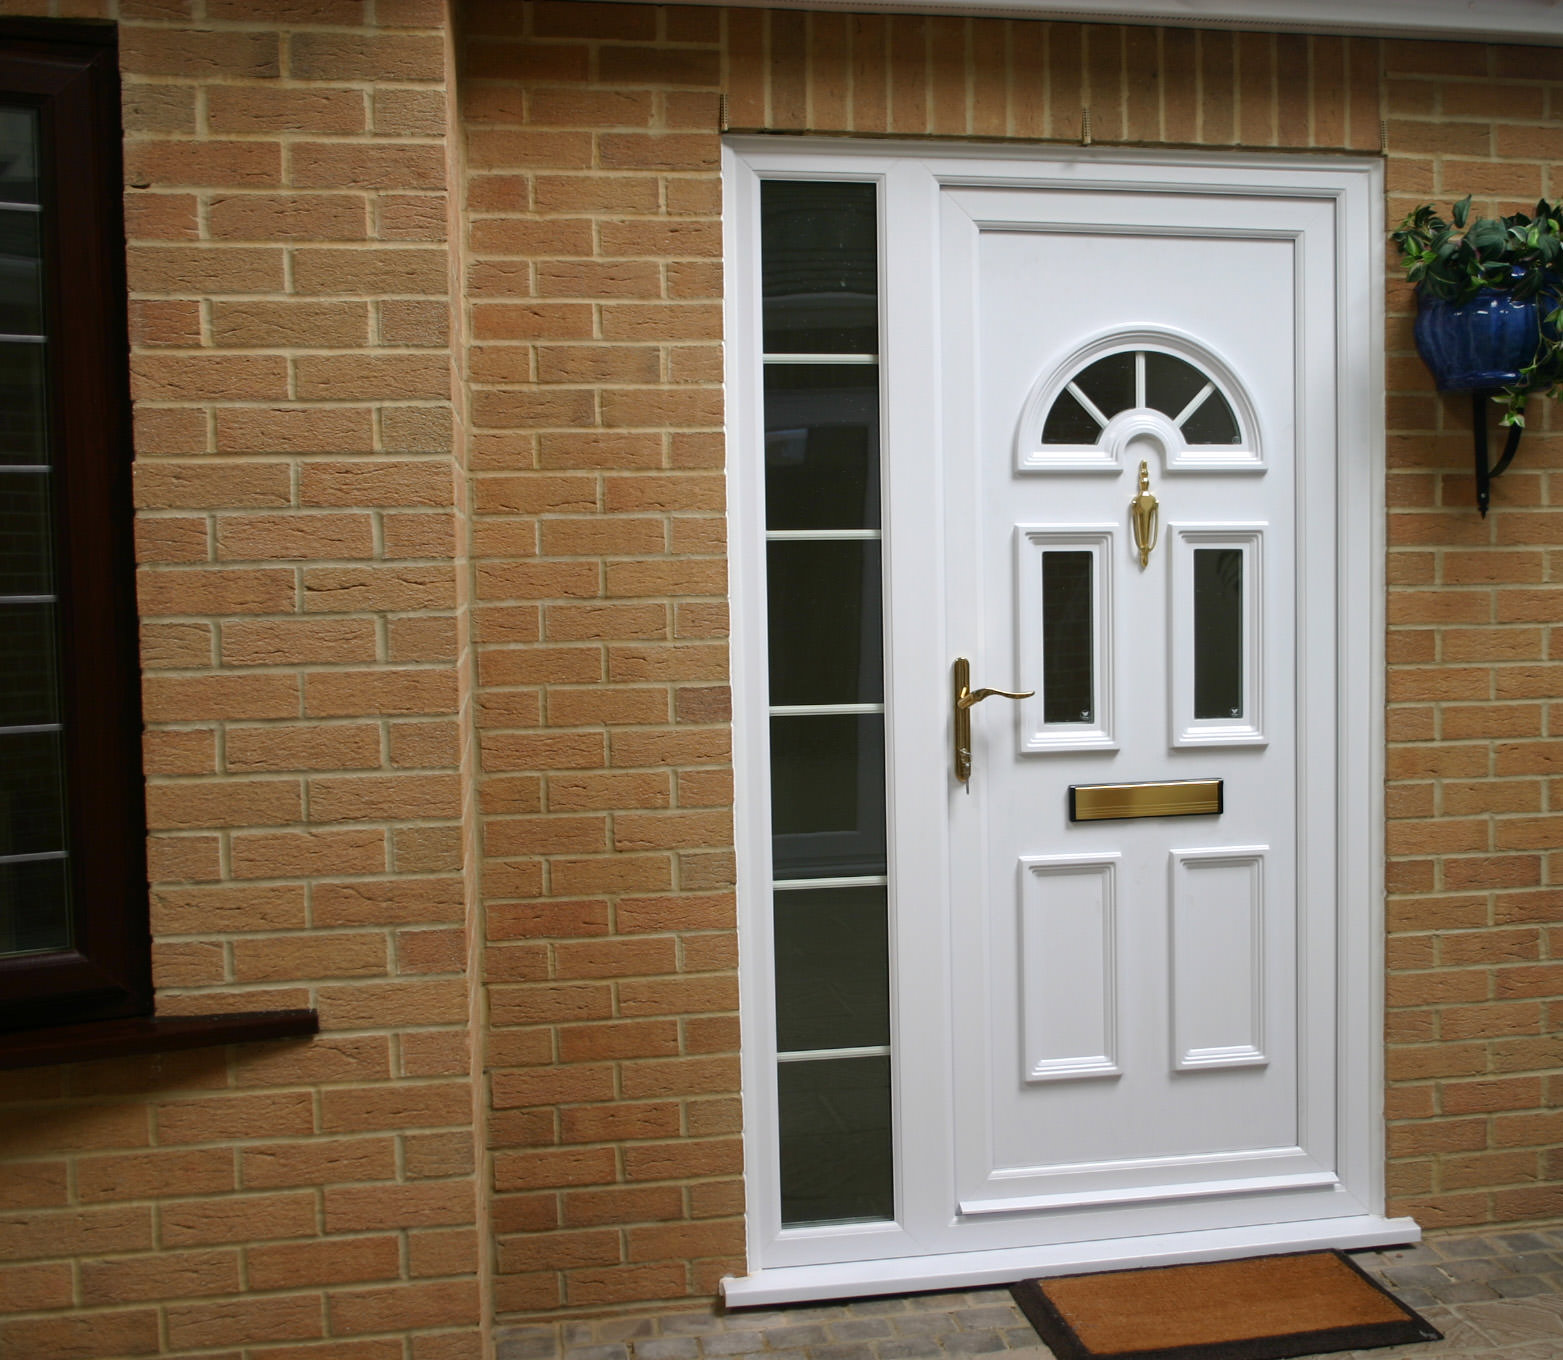 upvc doors harrogate double glazed doors front door